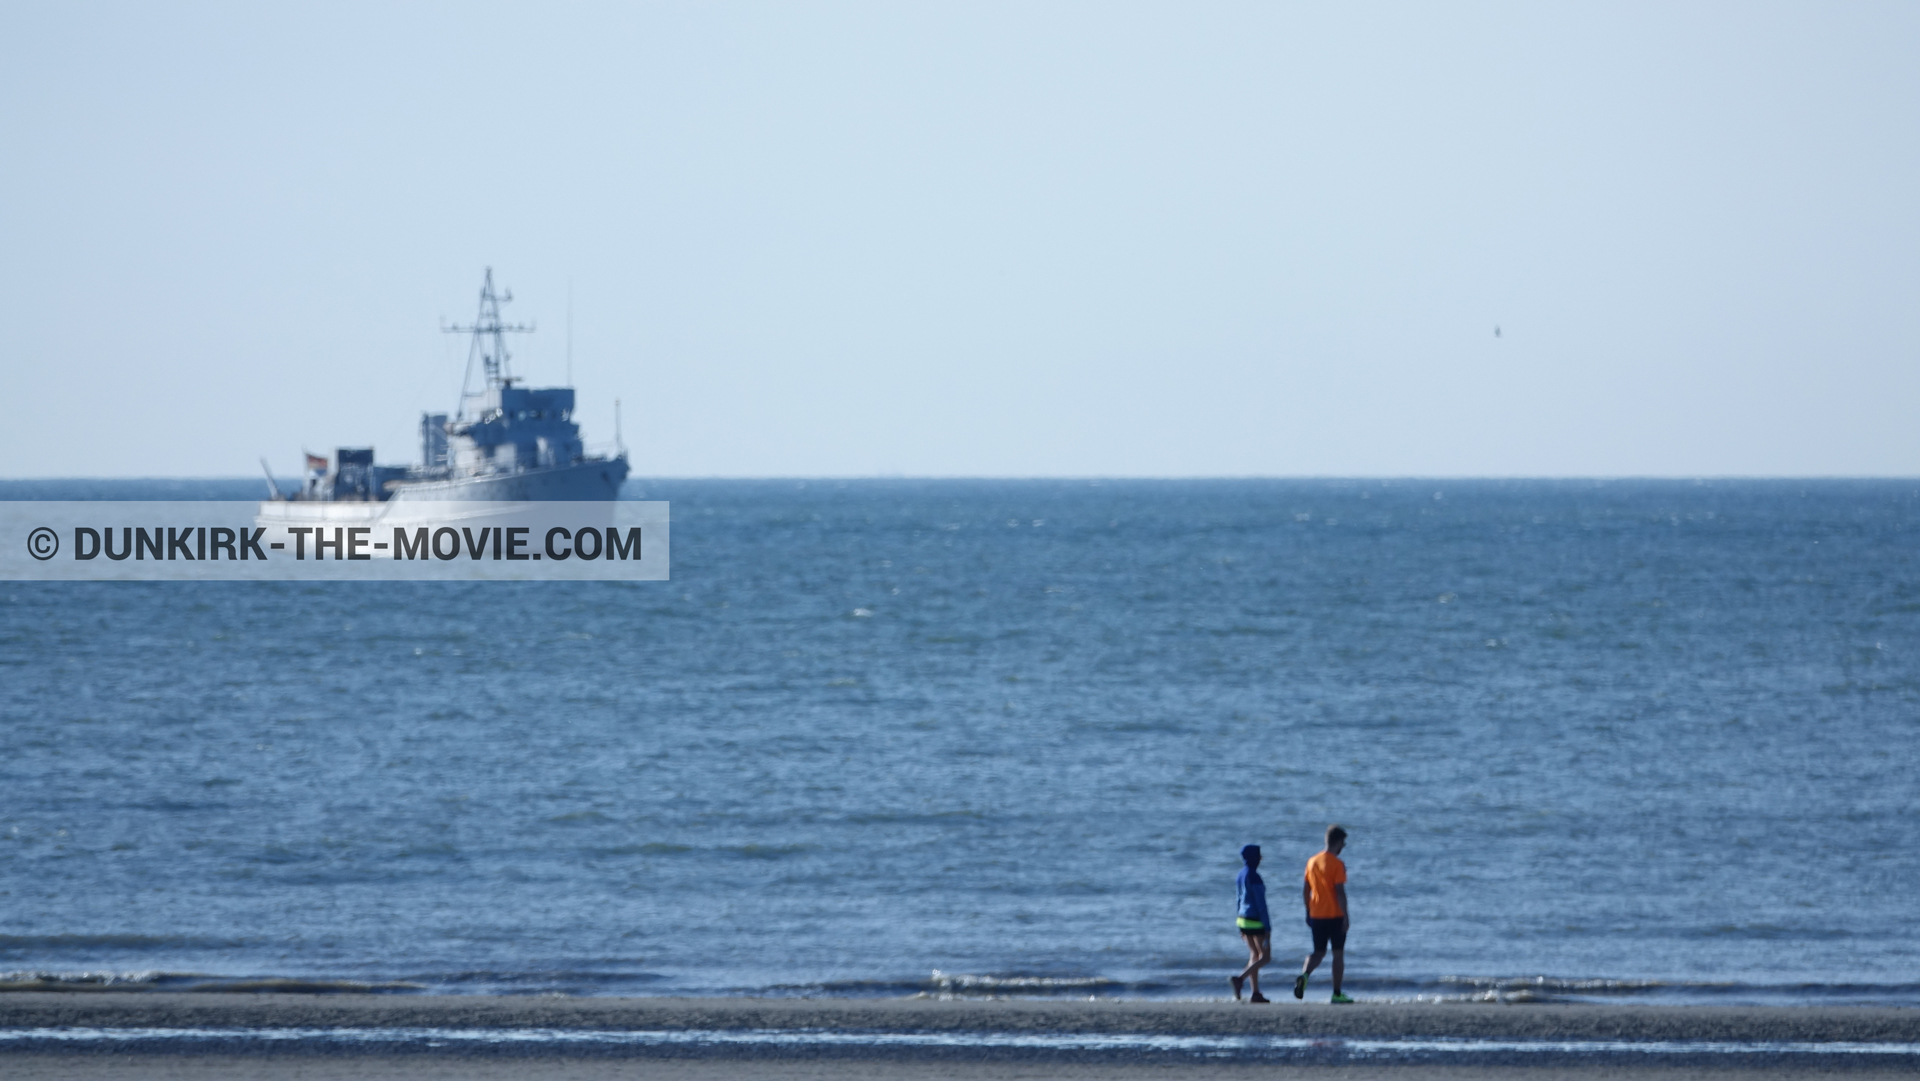 Picture with F34 - Hr.Ms. Sittard, beach,  from behind the scene of the Dunkirk movie by Nolan